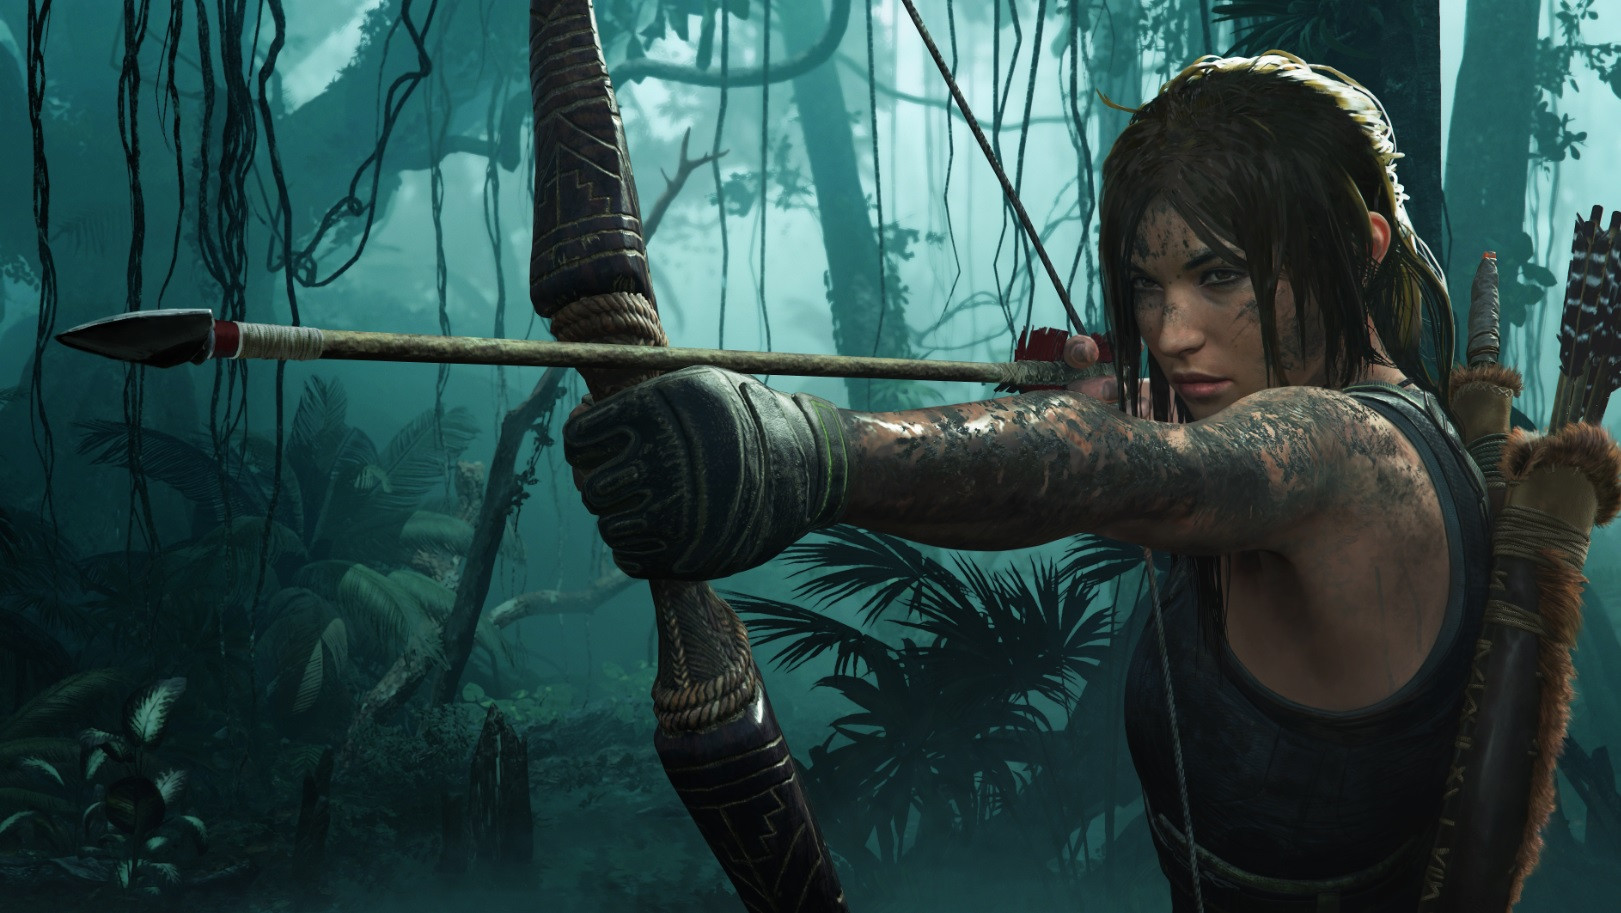 Lara Craft with bow and arrow from Tomb Raider